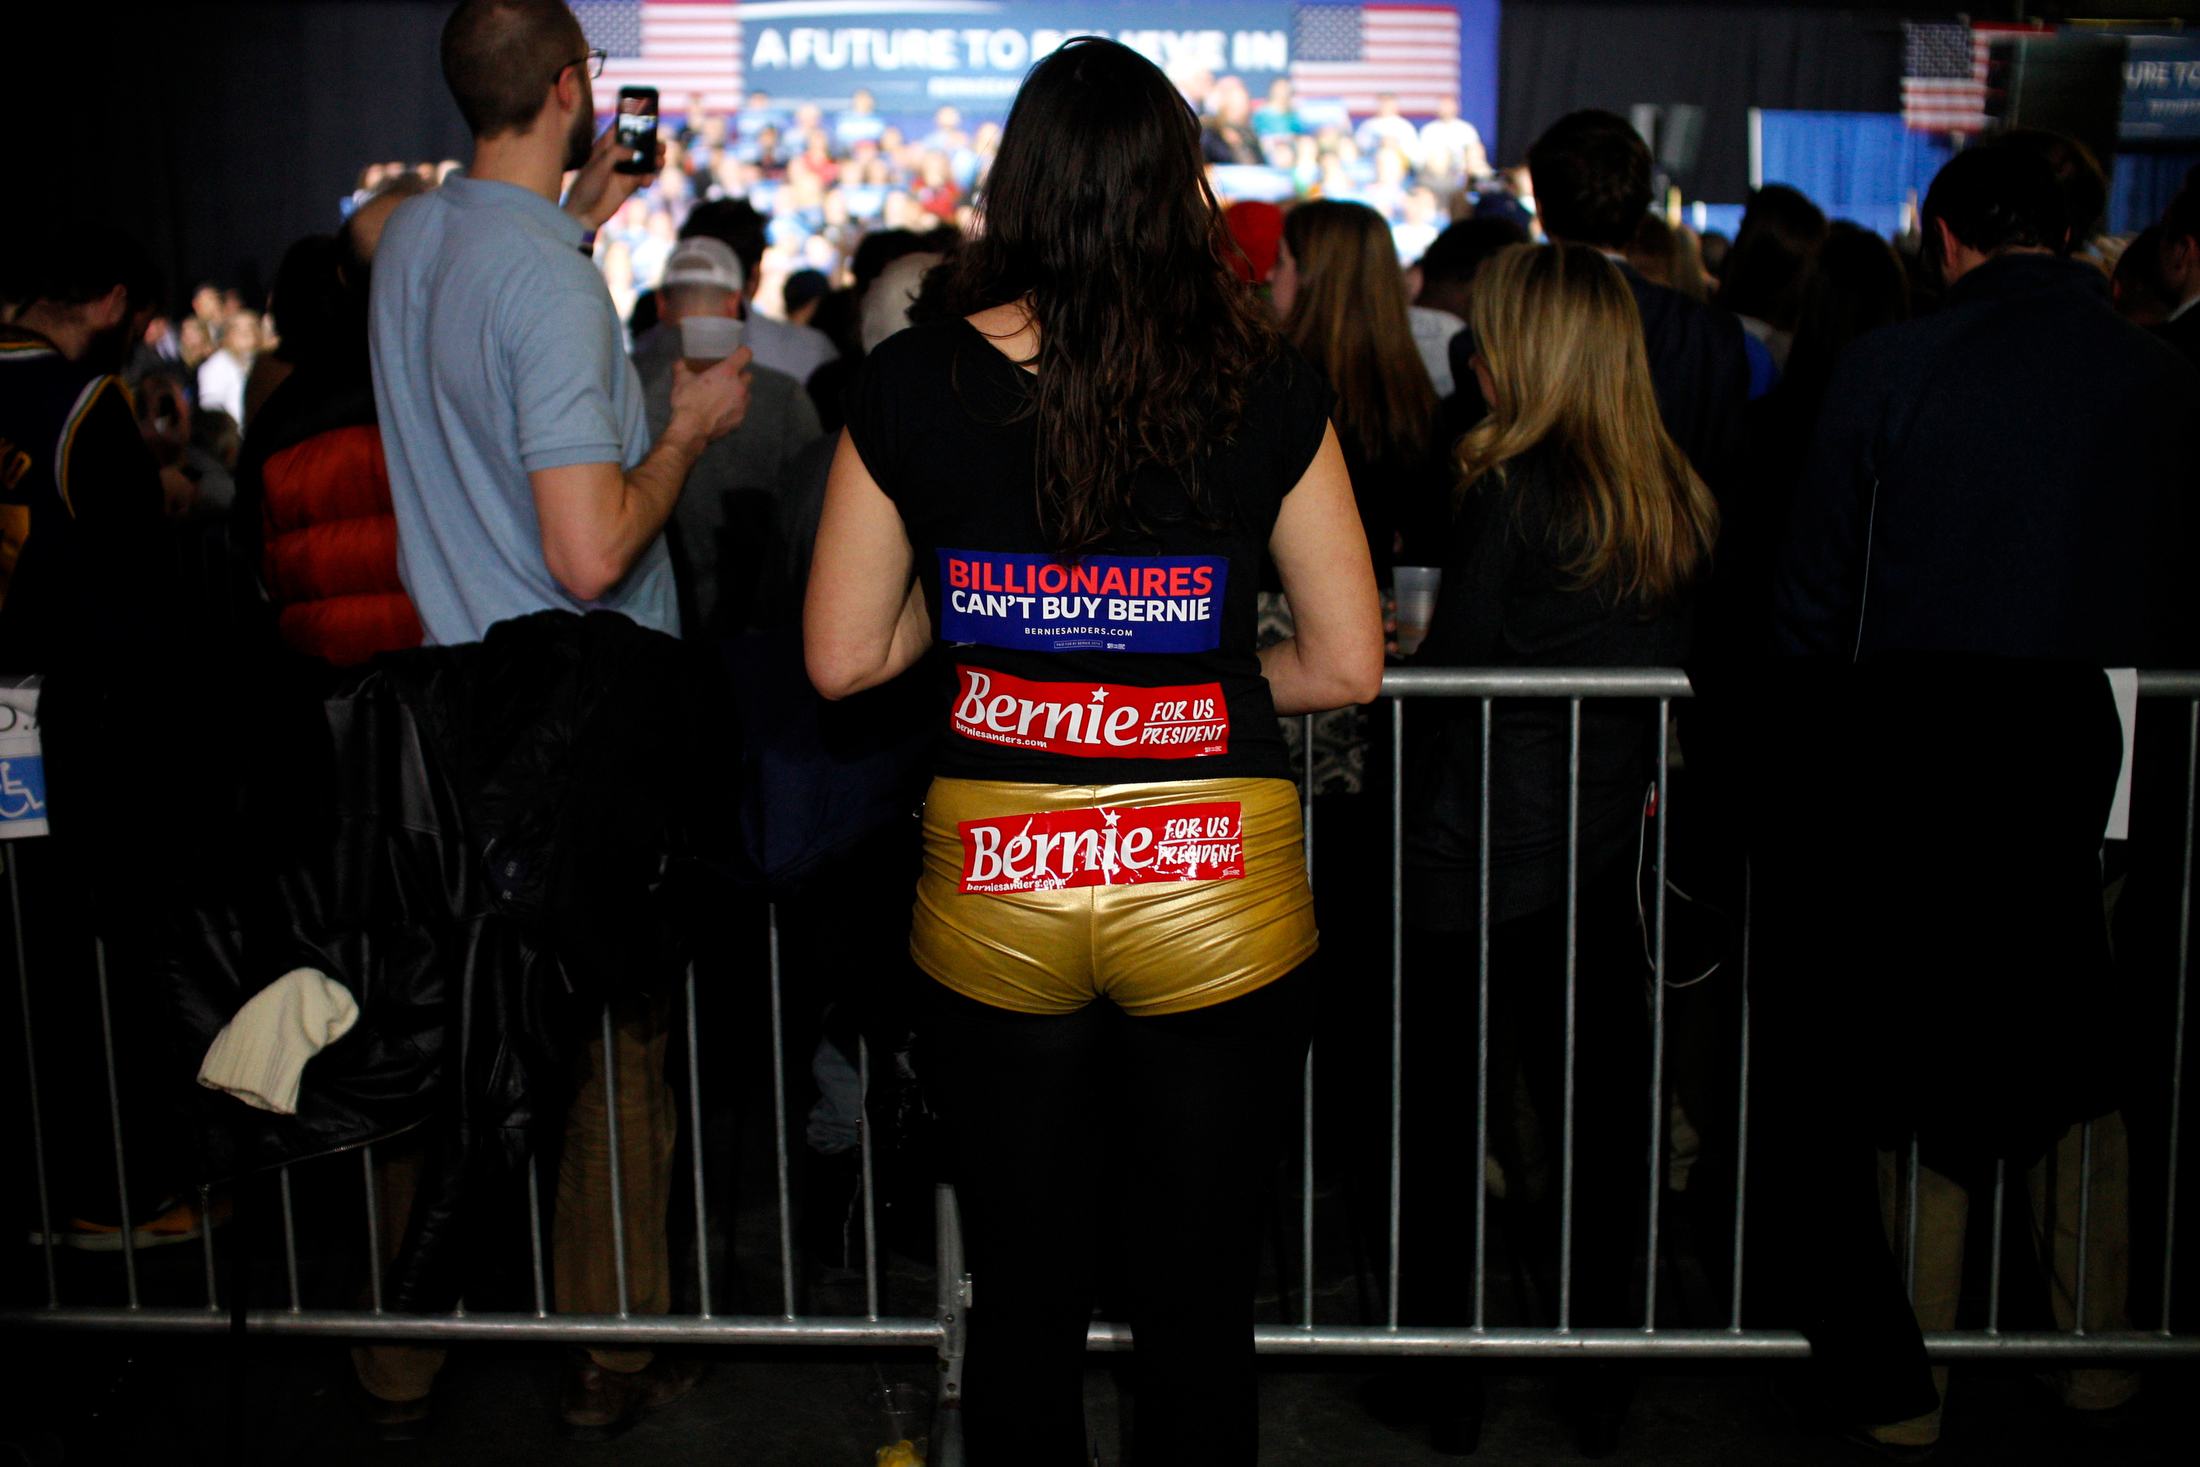 A supporter of Democratic presidential candidate Bernie Sanders watches from the back of the room as the candidate addresses the crowd at a Super Tuesday rally at the Champlain Valley Exposition in Essex Junction, Vermont on March 1, 2016.